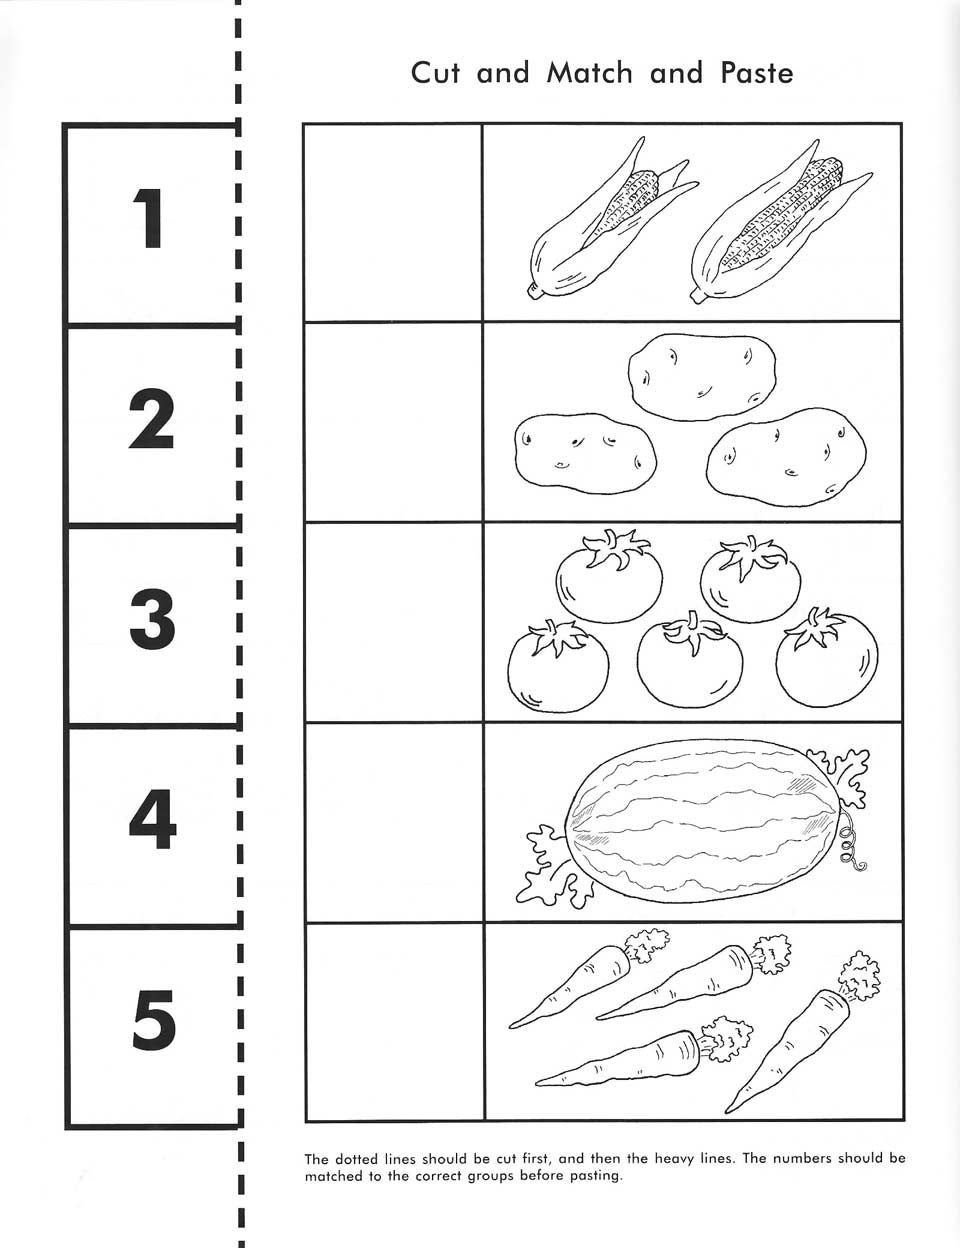 Cut and Paste Worksheet Rod Staff Preschool Workbooks with Free Cut and Paste